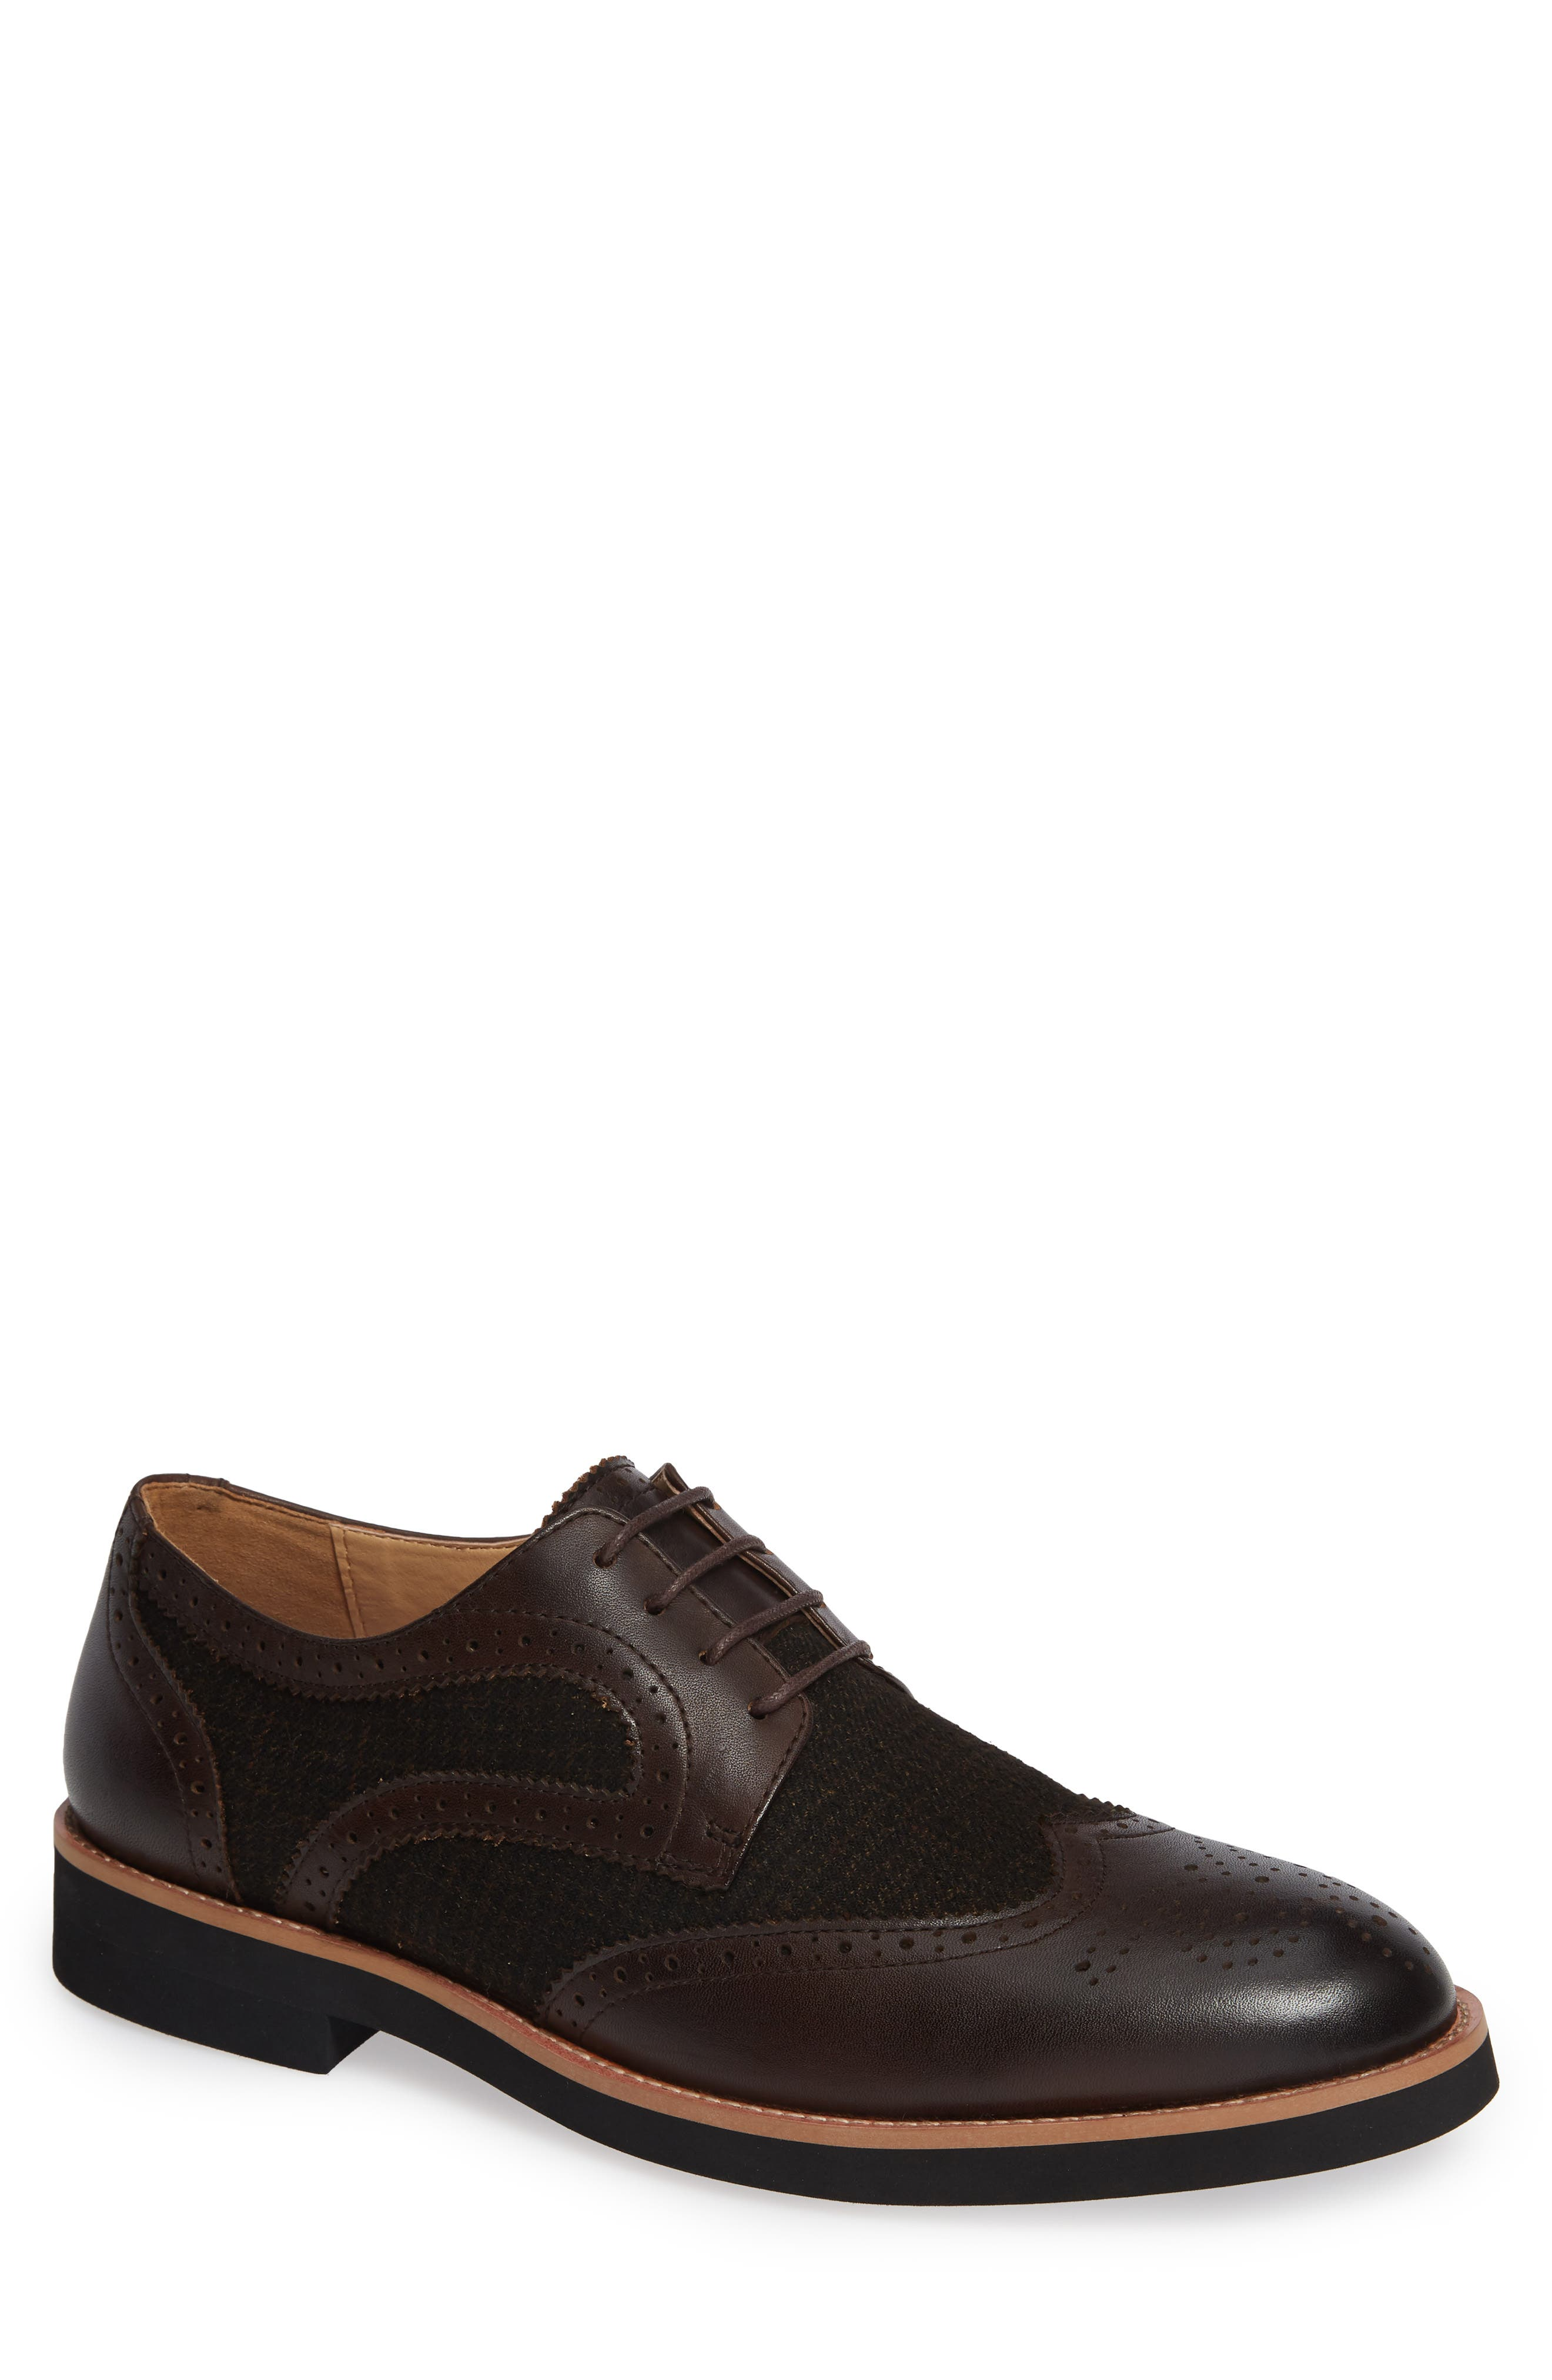 Bolton Wingtip,                             Main thumbnail 1, color,                             BROWN